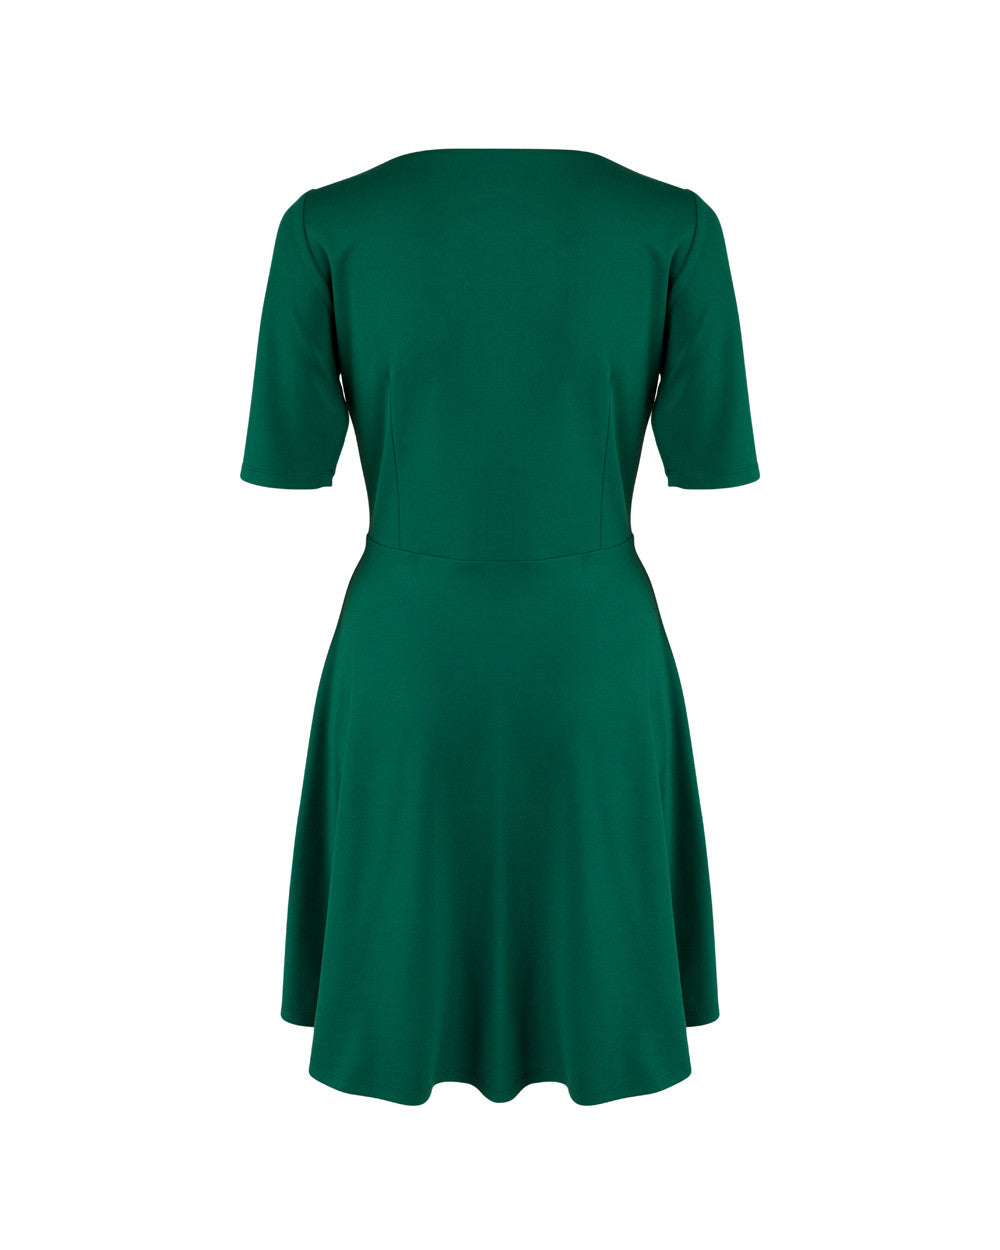 The classic fit & flare dress is perfect for the Tahlo woman that loves a flared skirt.